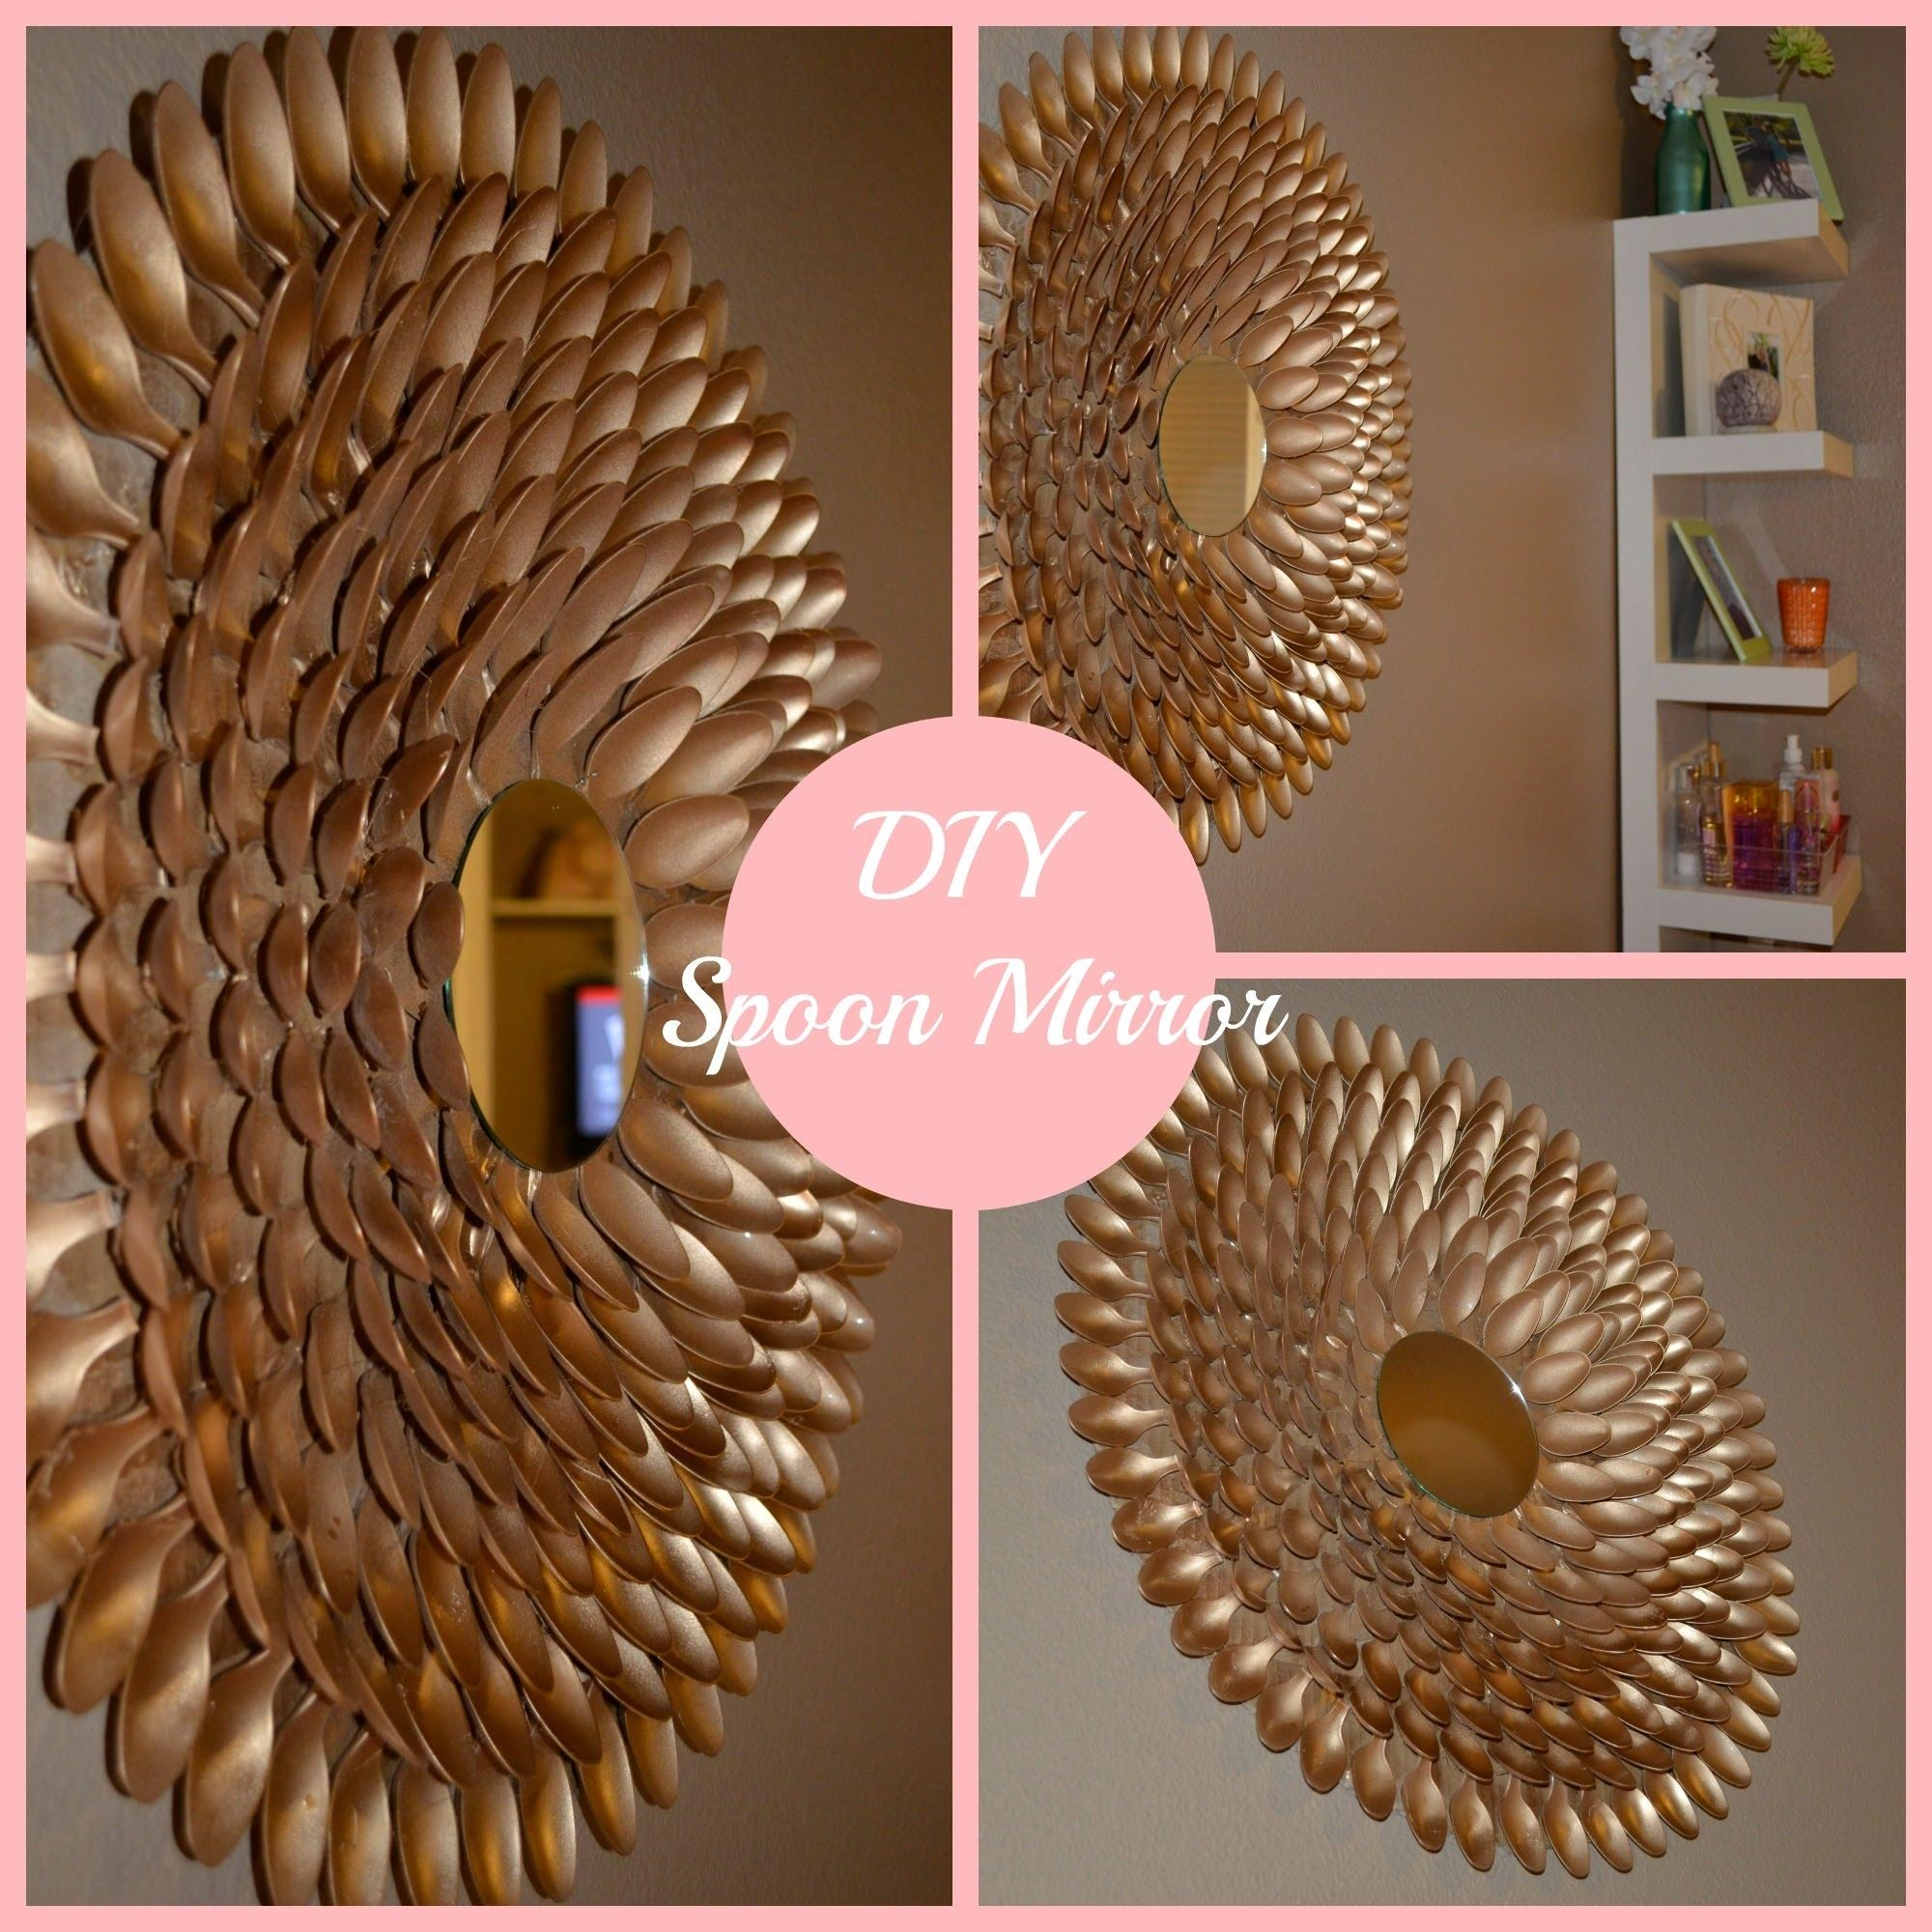 Diy Spoon Mirror Wall Decor – Youtube Intended For Plastic Spoon Wall Art (View 1 of 20)